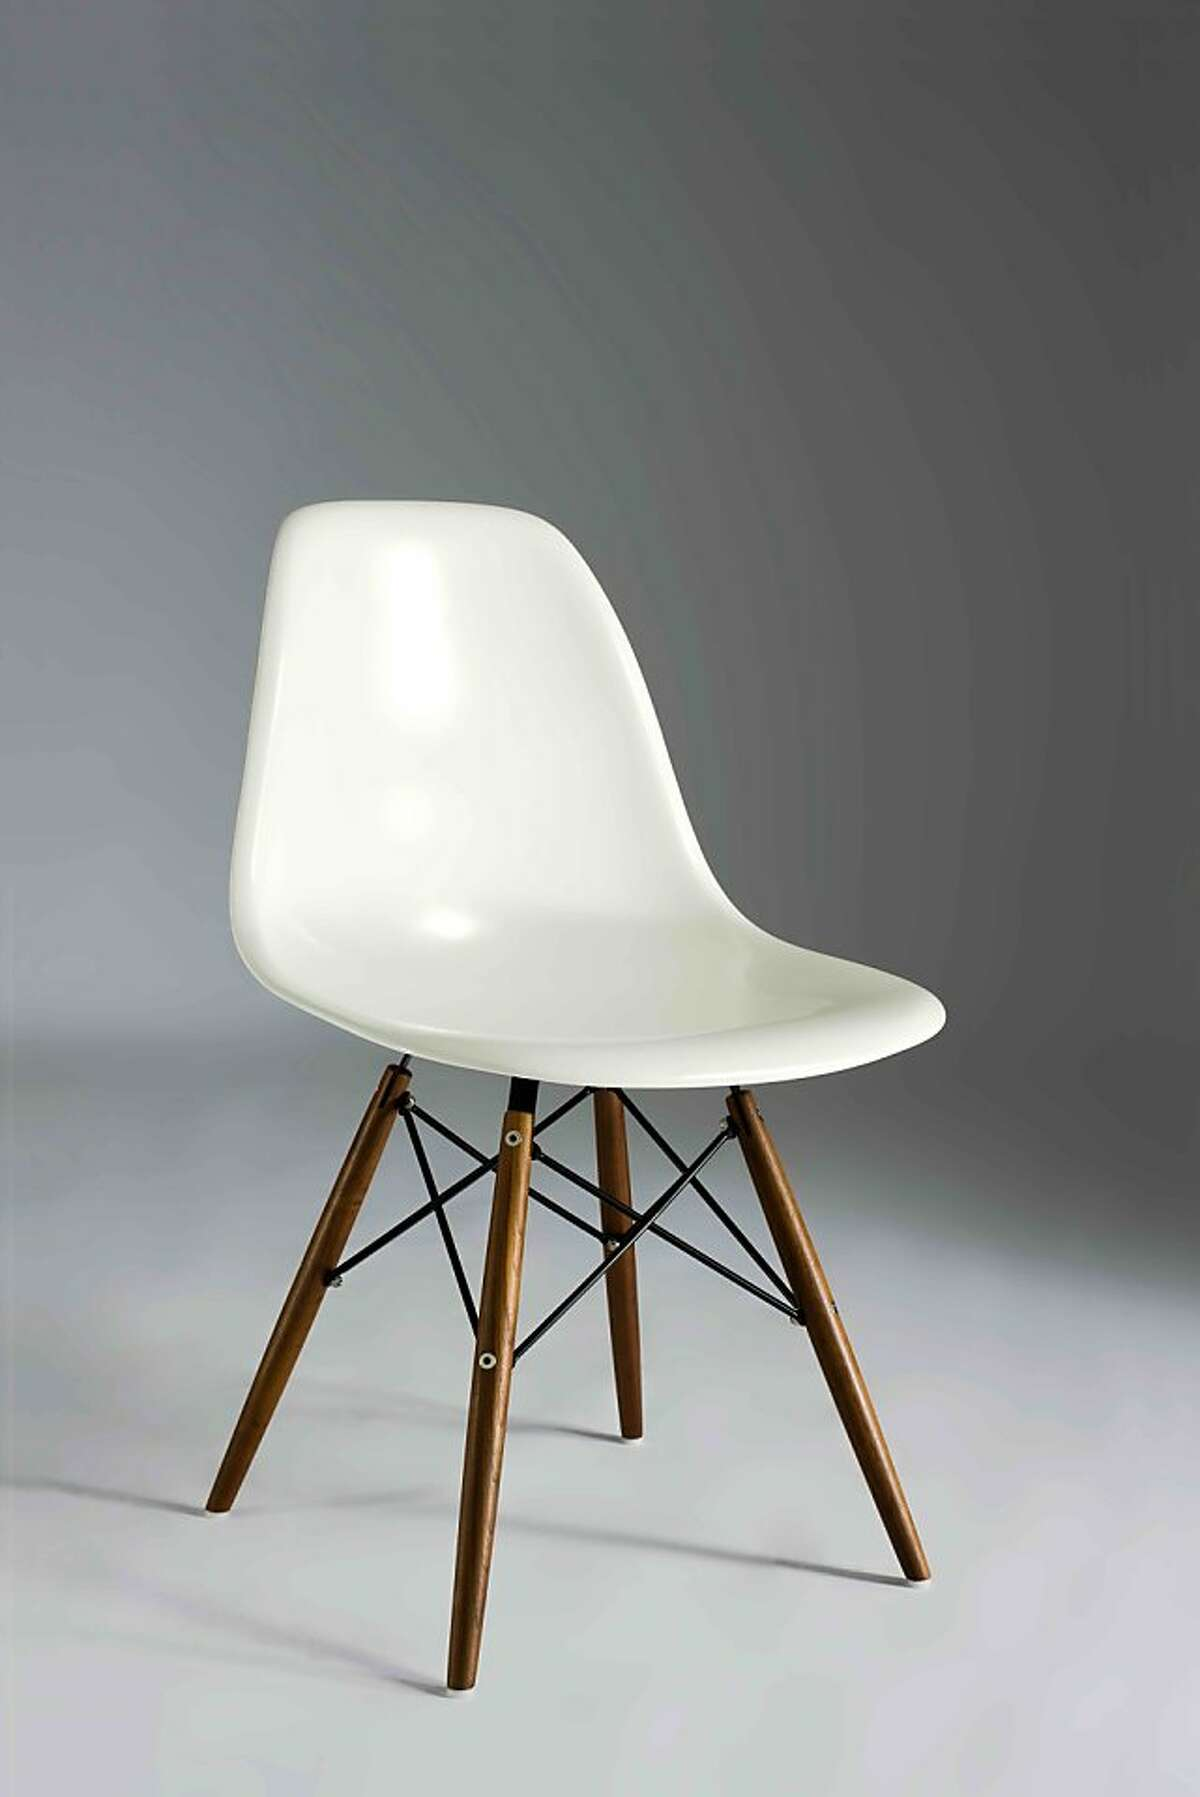 Less: $275 Molded Fiberglass Side Chair with Wood Legs at Inmod (inmod.com)